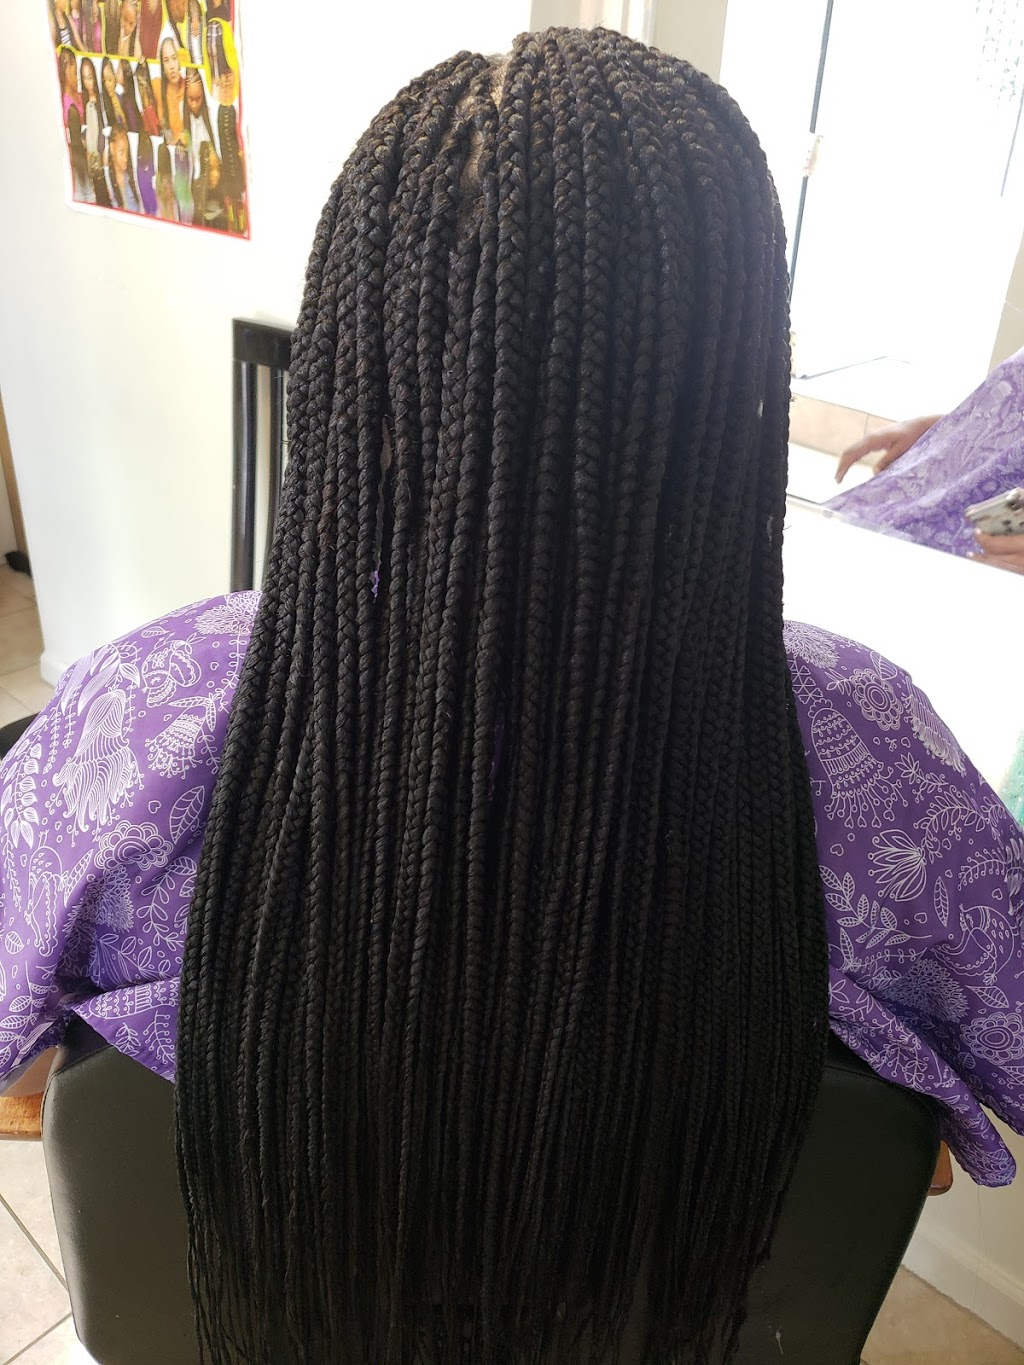 Flakky African Hair Braiding - hair care  | Photo 7 of 10 | Address: 253 Broad St, Staten Island, NY 10304, USA | Phone: (347) 371-3645